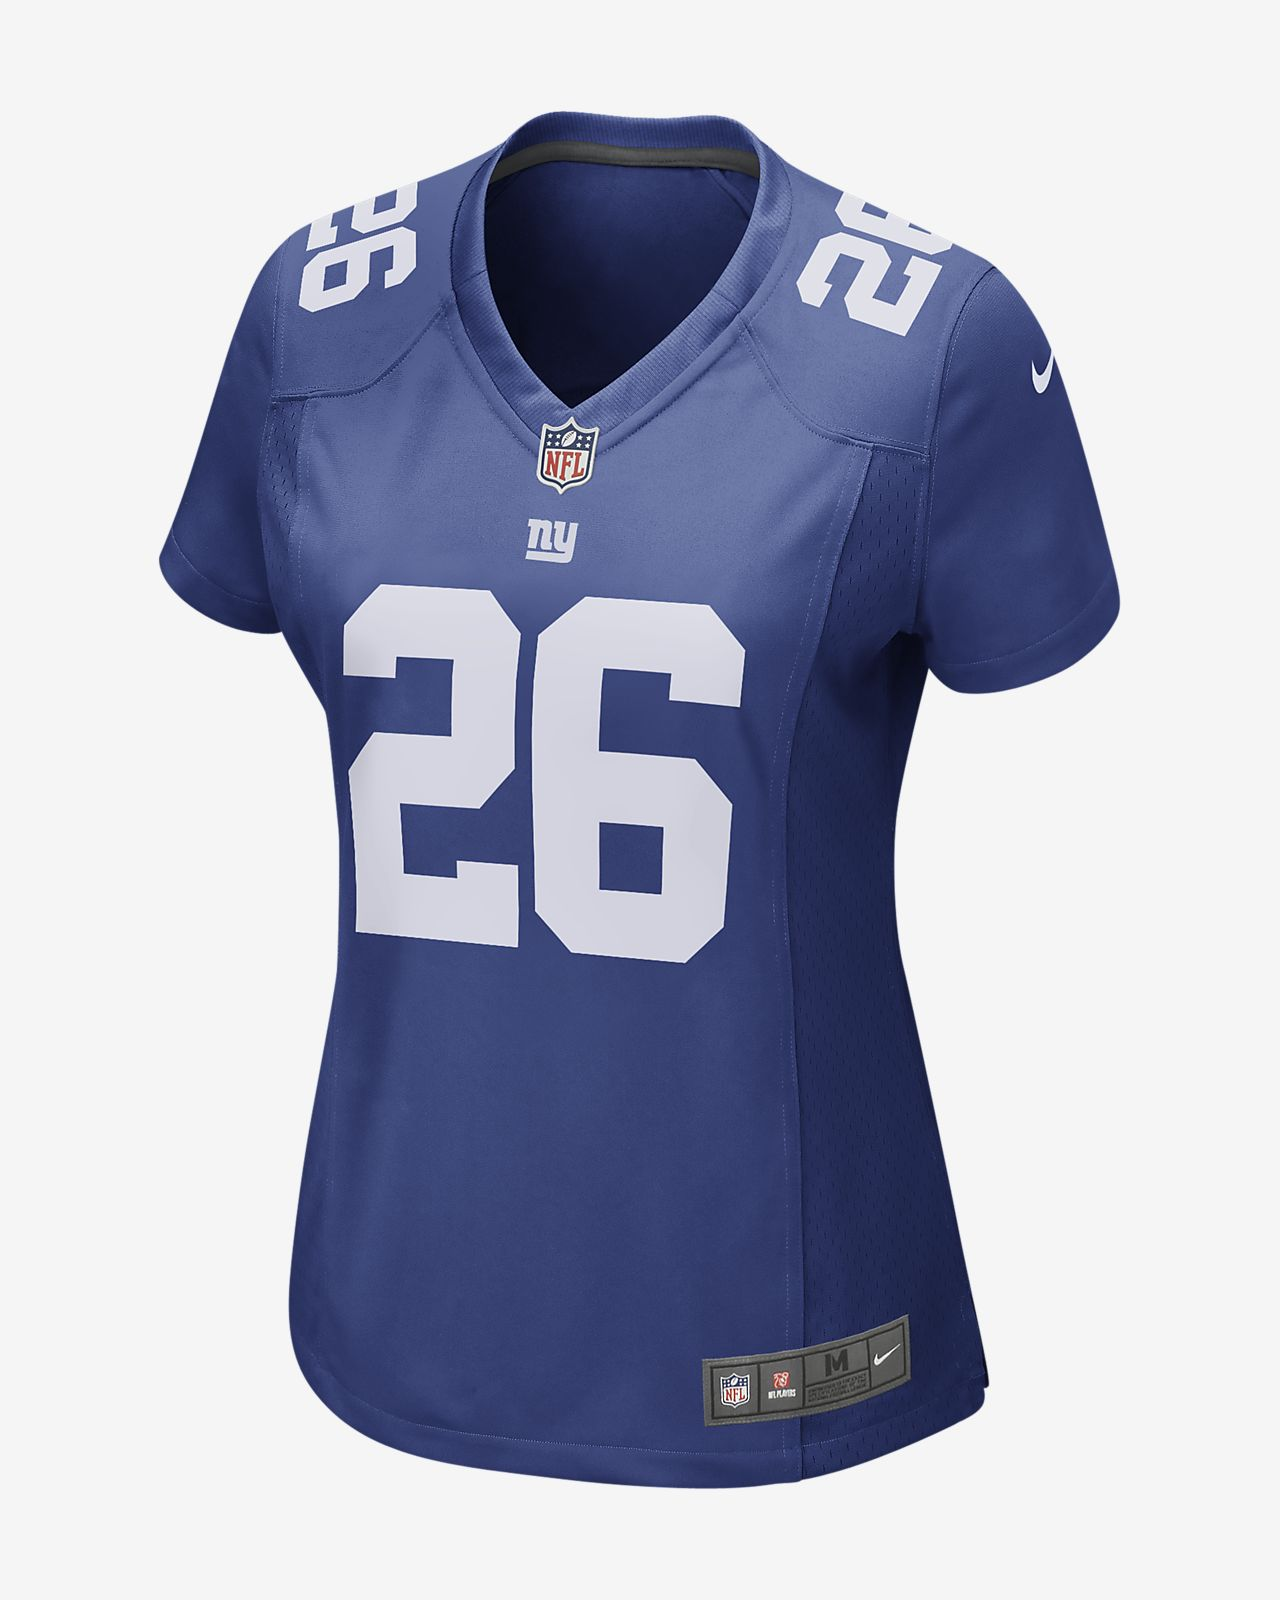 NFL New York Giants Game (Saquon Barkley) Women s Football Jersey ... 3bc854356